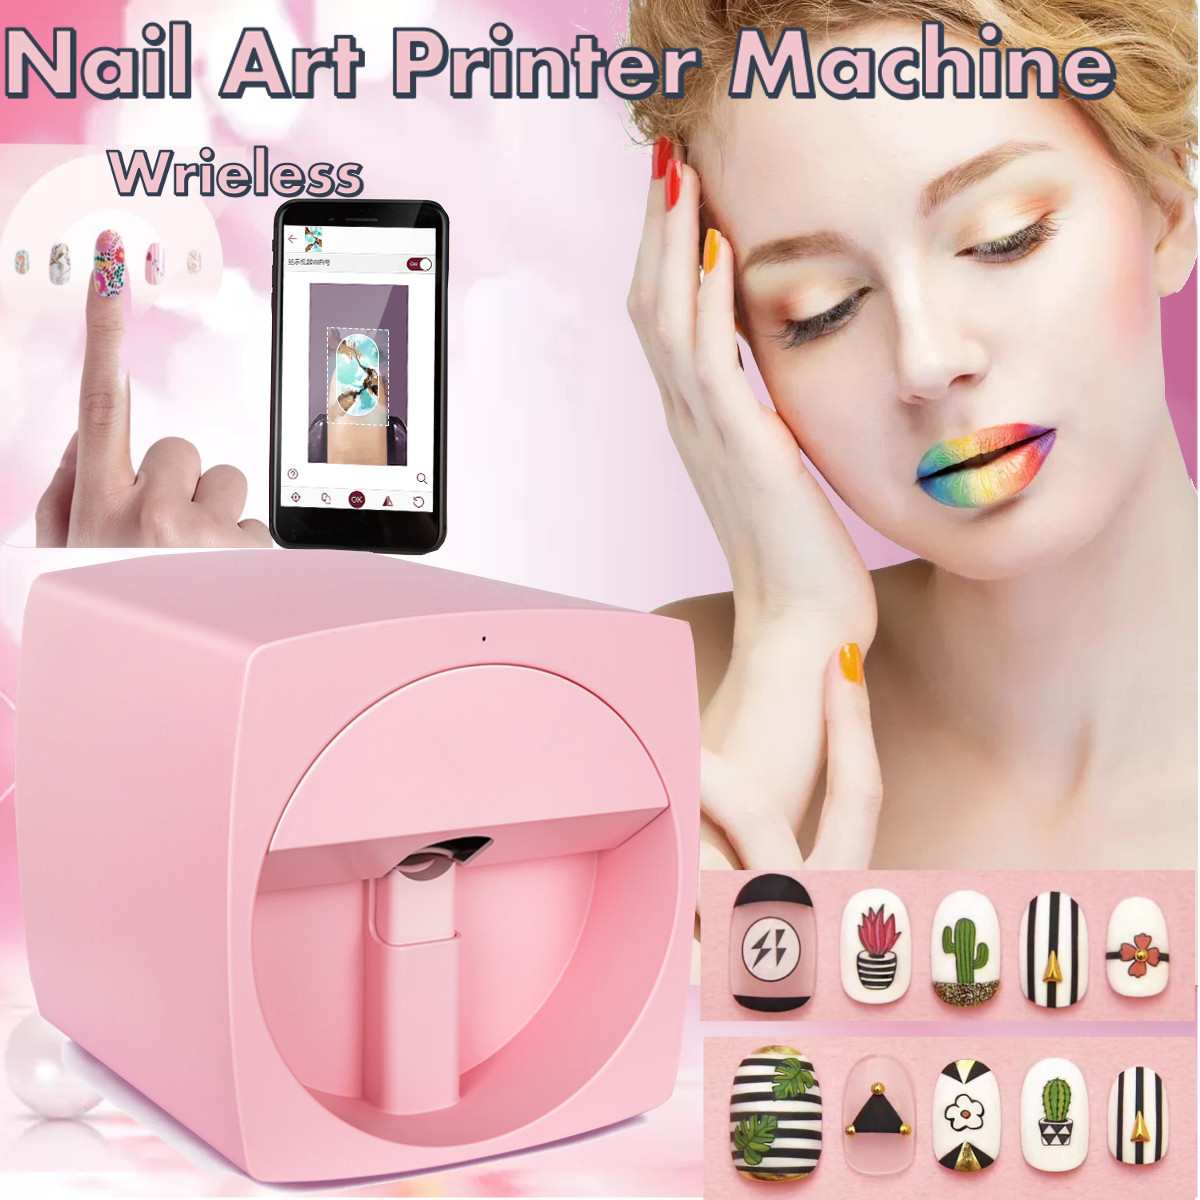 Mobile Nail Printer Manicure Transmission Picture Photo Pattern Color Printing advanced Nail Art EquipmentMobile Nail Printer Manicure Transmission Picture Photo Pattern Color Printing advanced Nail Art Equipment